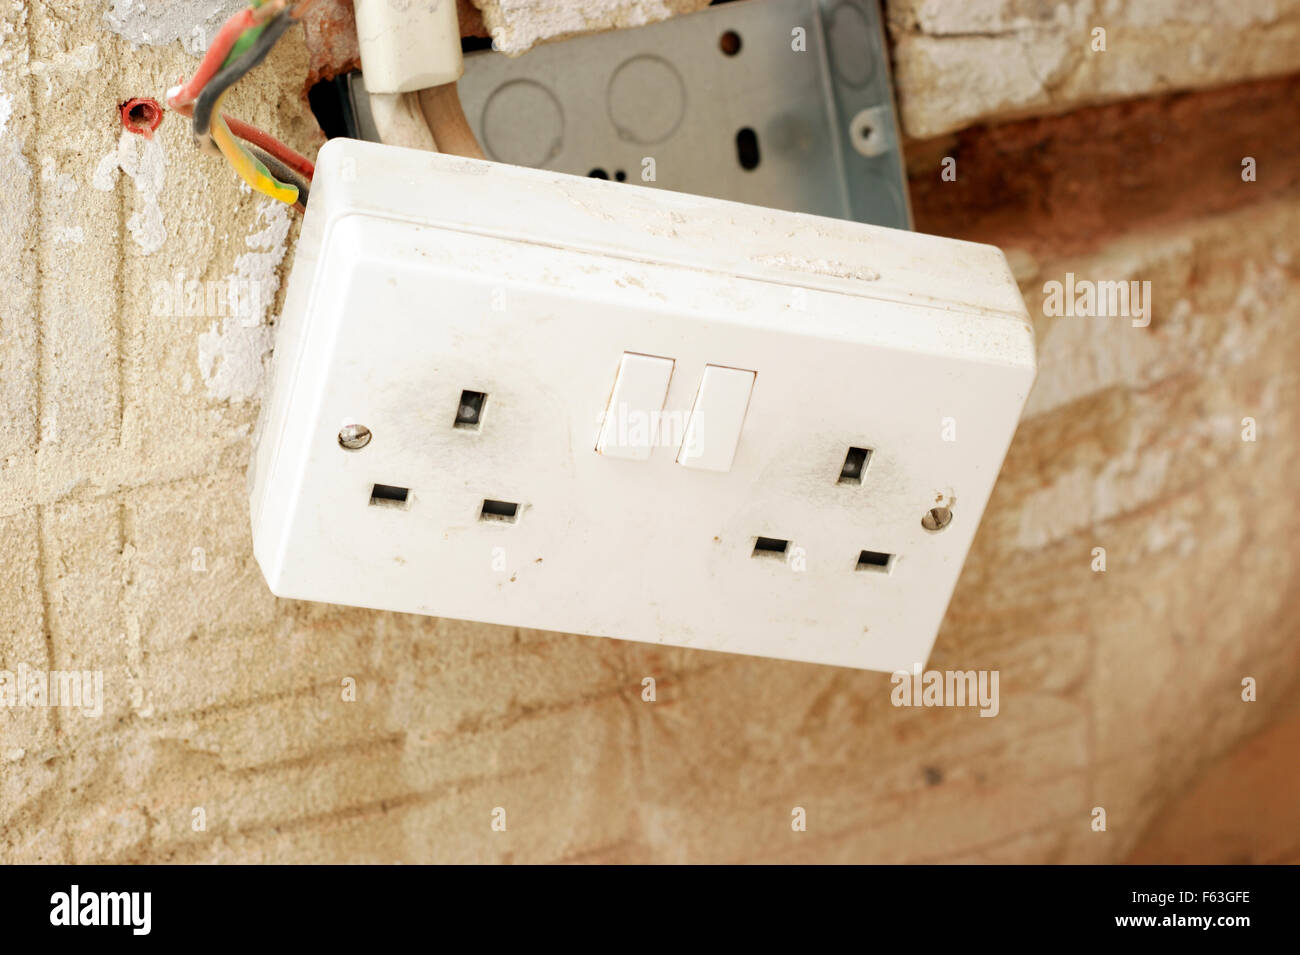 Electrical Plug Wiring For A House Enthusiast Diagrams Electric Sockets With Exposed In Rented Social Housing Rh Alamy Com